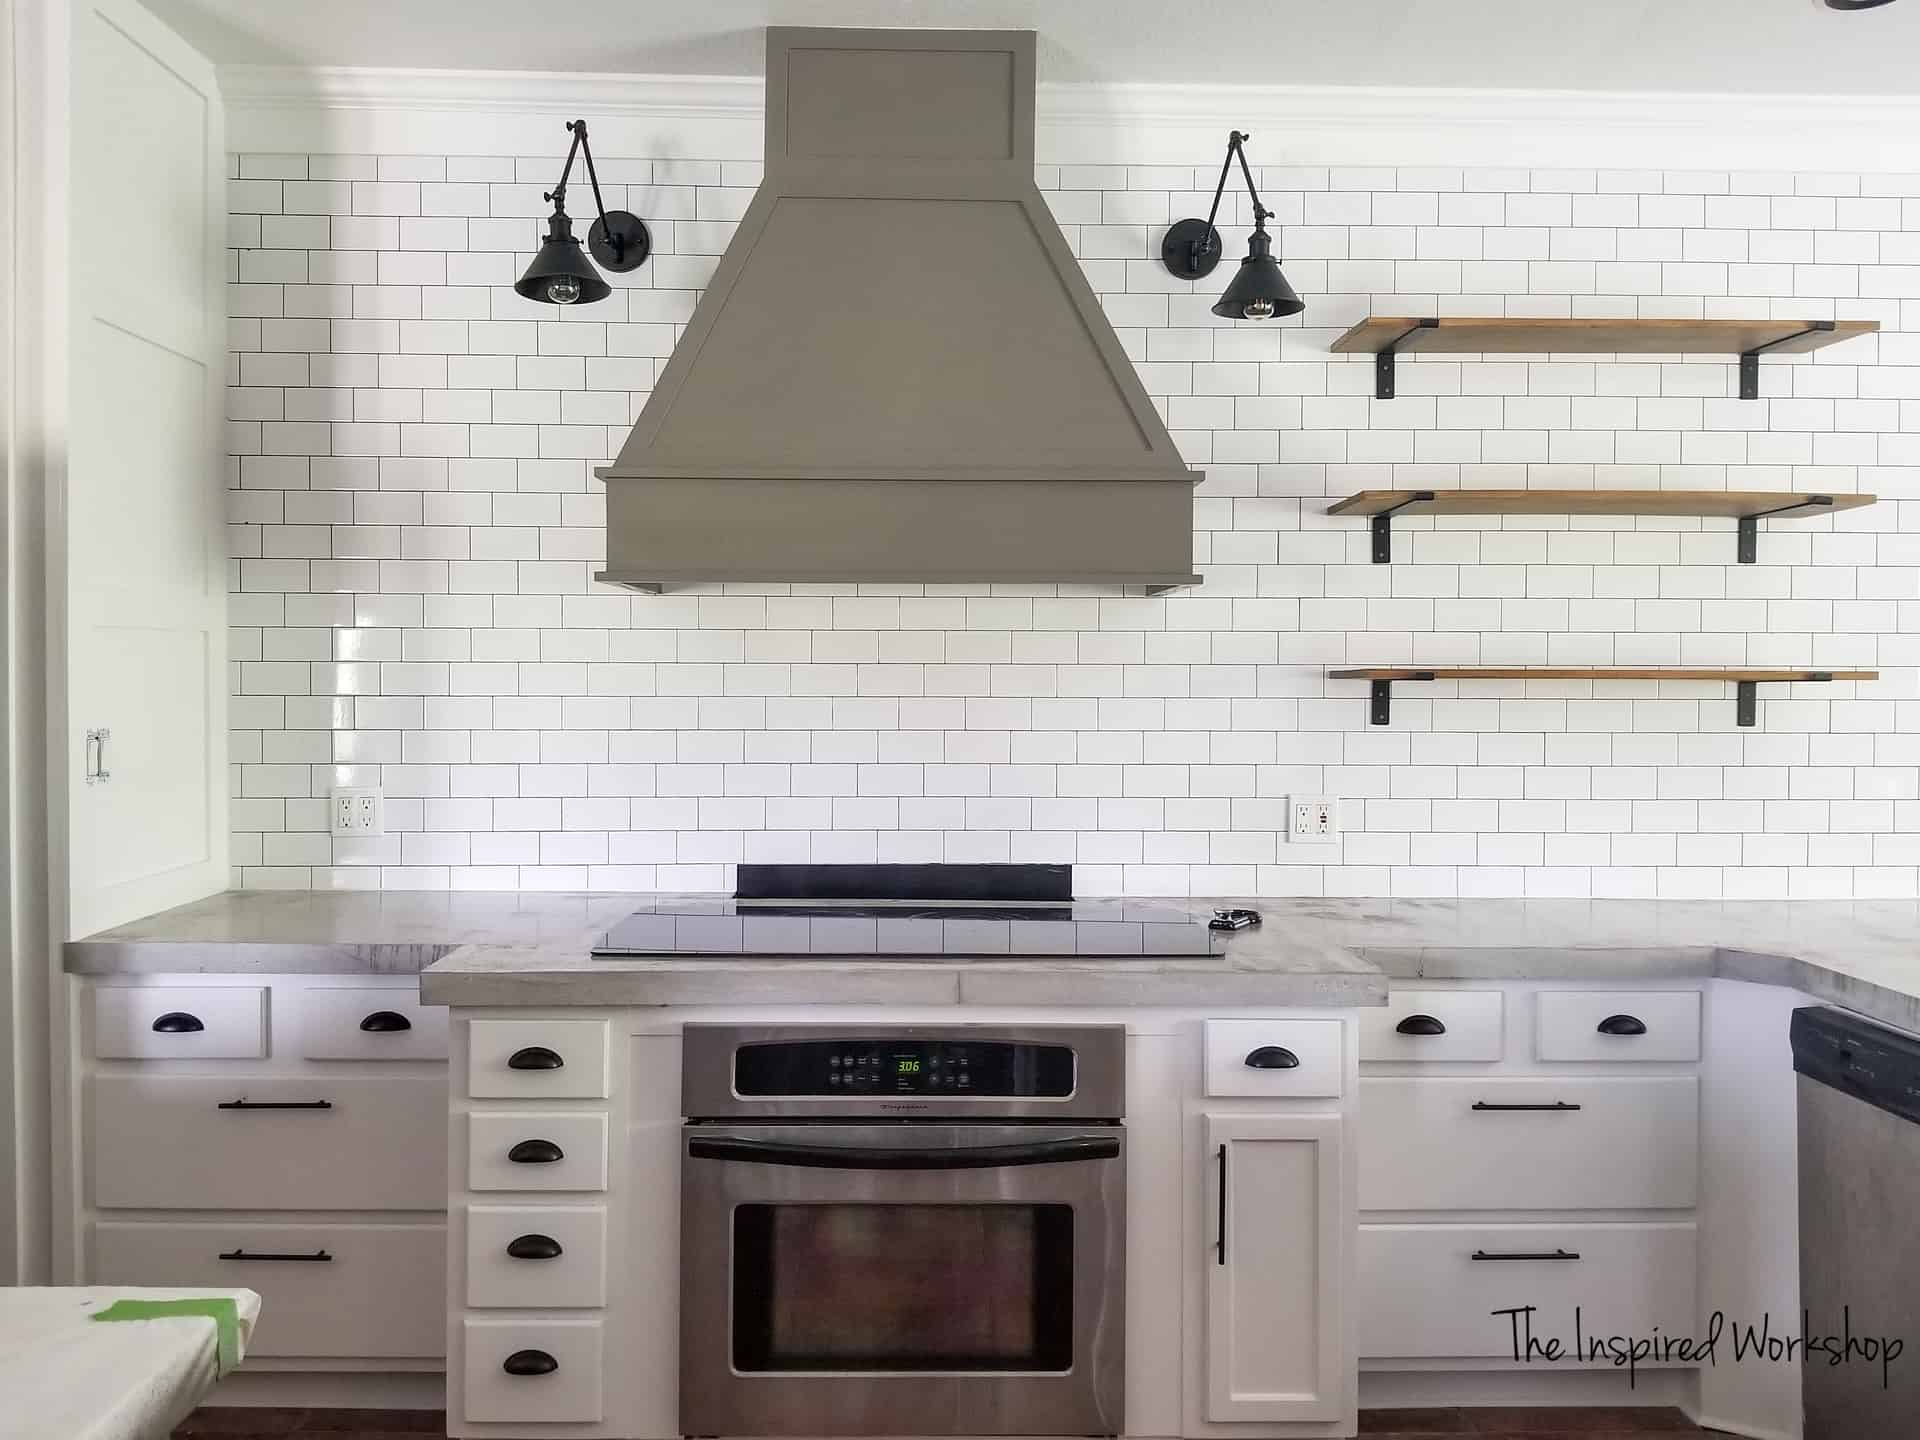 Kitchen Renovation Ideas - MOdern farmhouse style with subway tile, vent hood and white cabinets